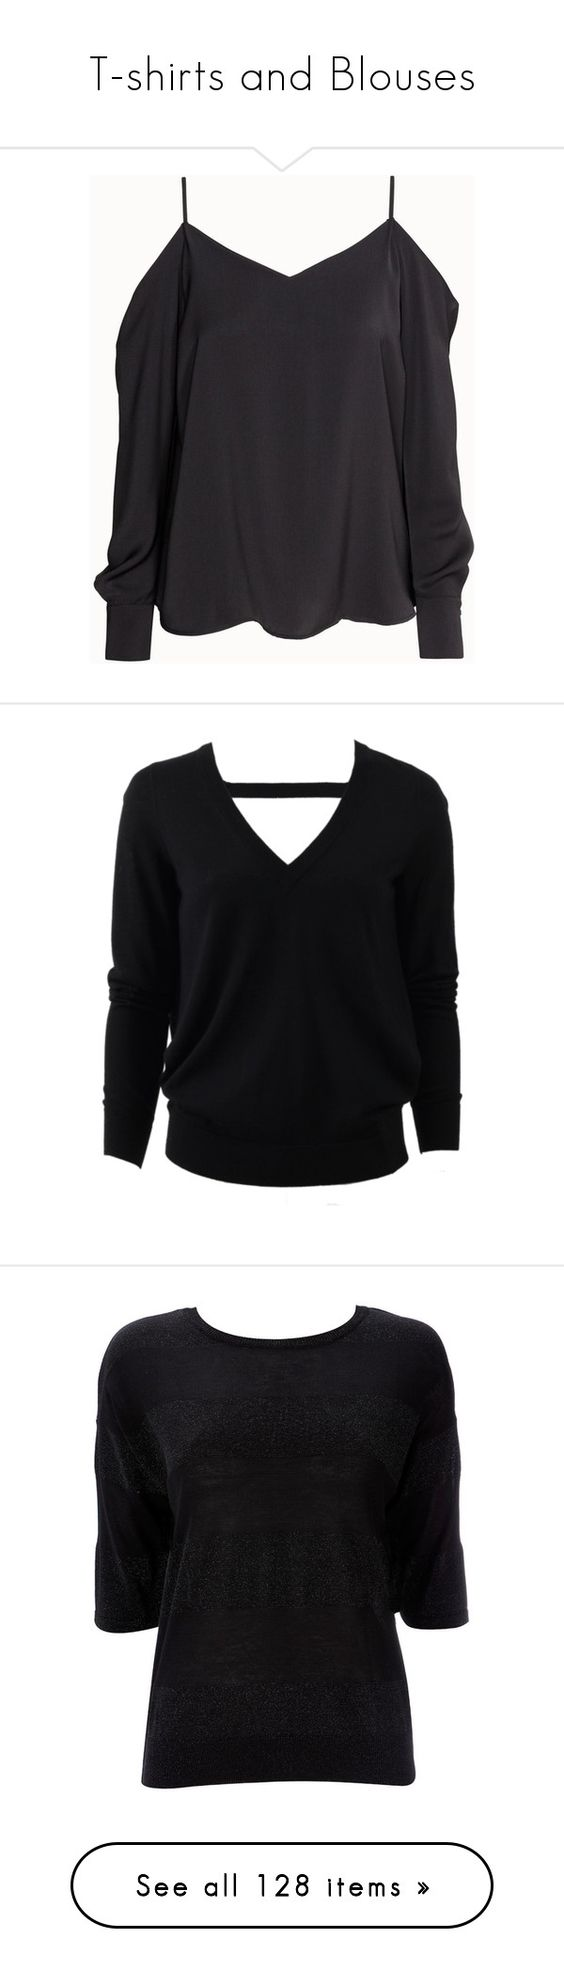 """T-shirts and Blouses"" by esther-rosa ❤ liked on Polyvore featuring tops, blouses, shirts, black, long black shirt, long sleeve shirts, long sleeve tops, off shoulder blouse, black off the shoulder top and sweaters"